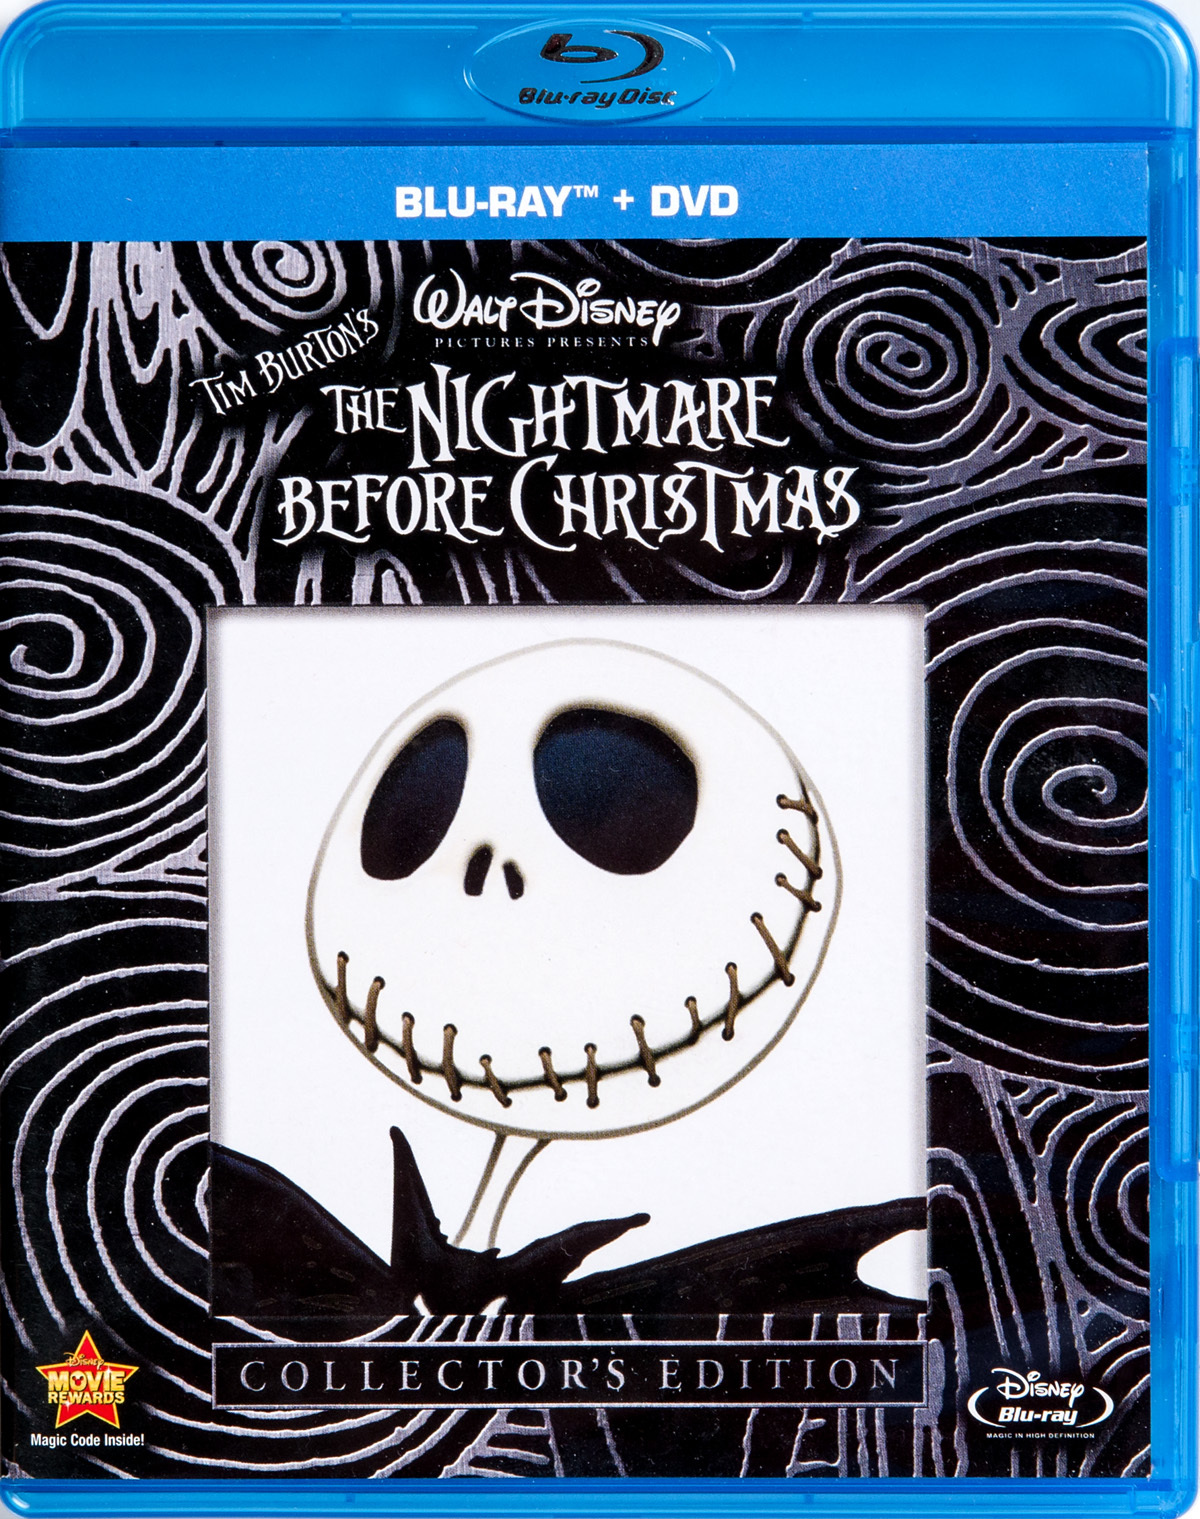 The Nightmare Before Christmas (video) | Disney Wiki | FANDOM ...